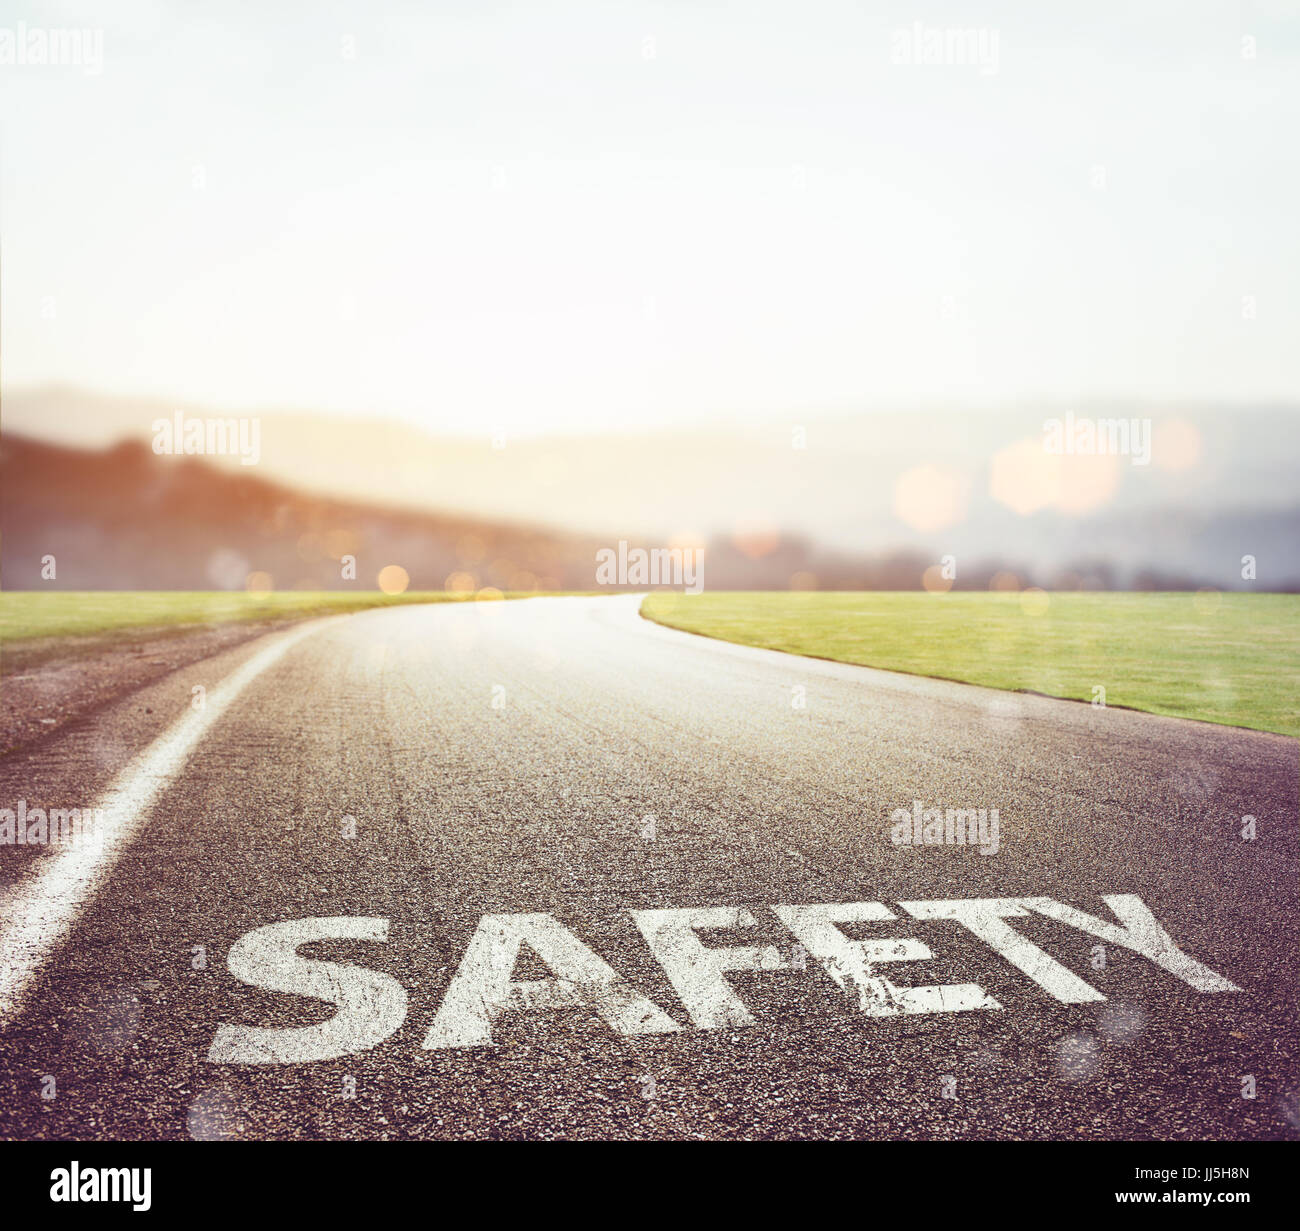 Safe road to travel - Stock Image